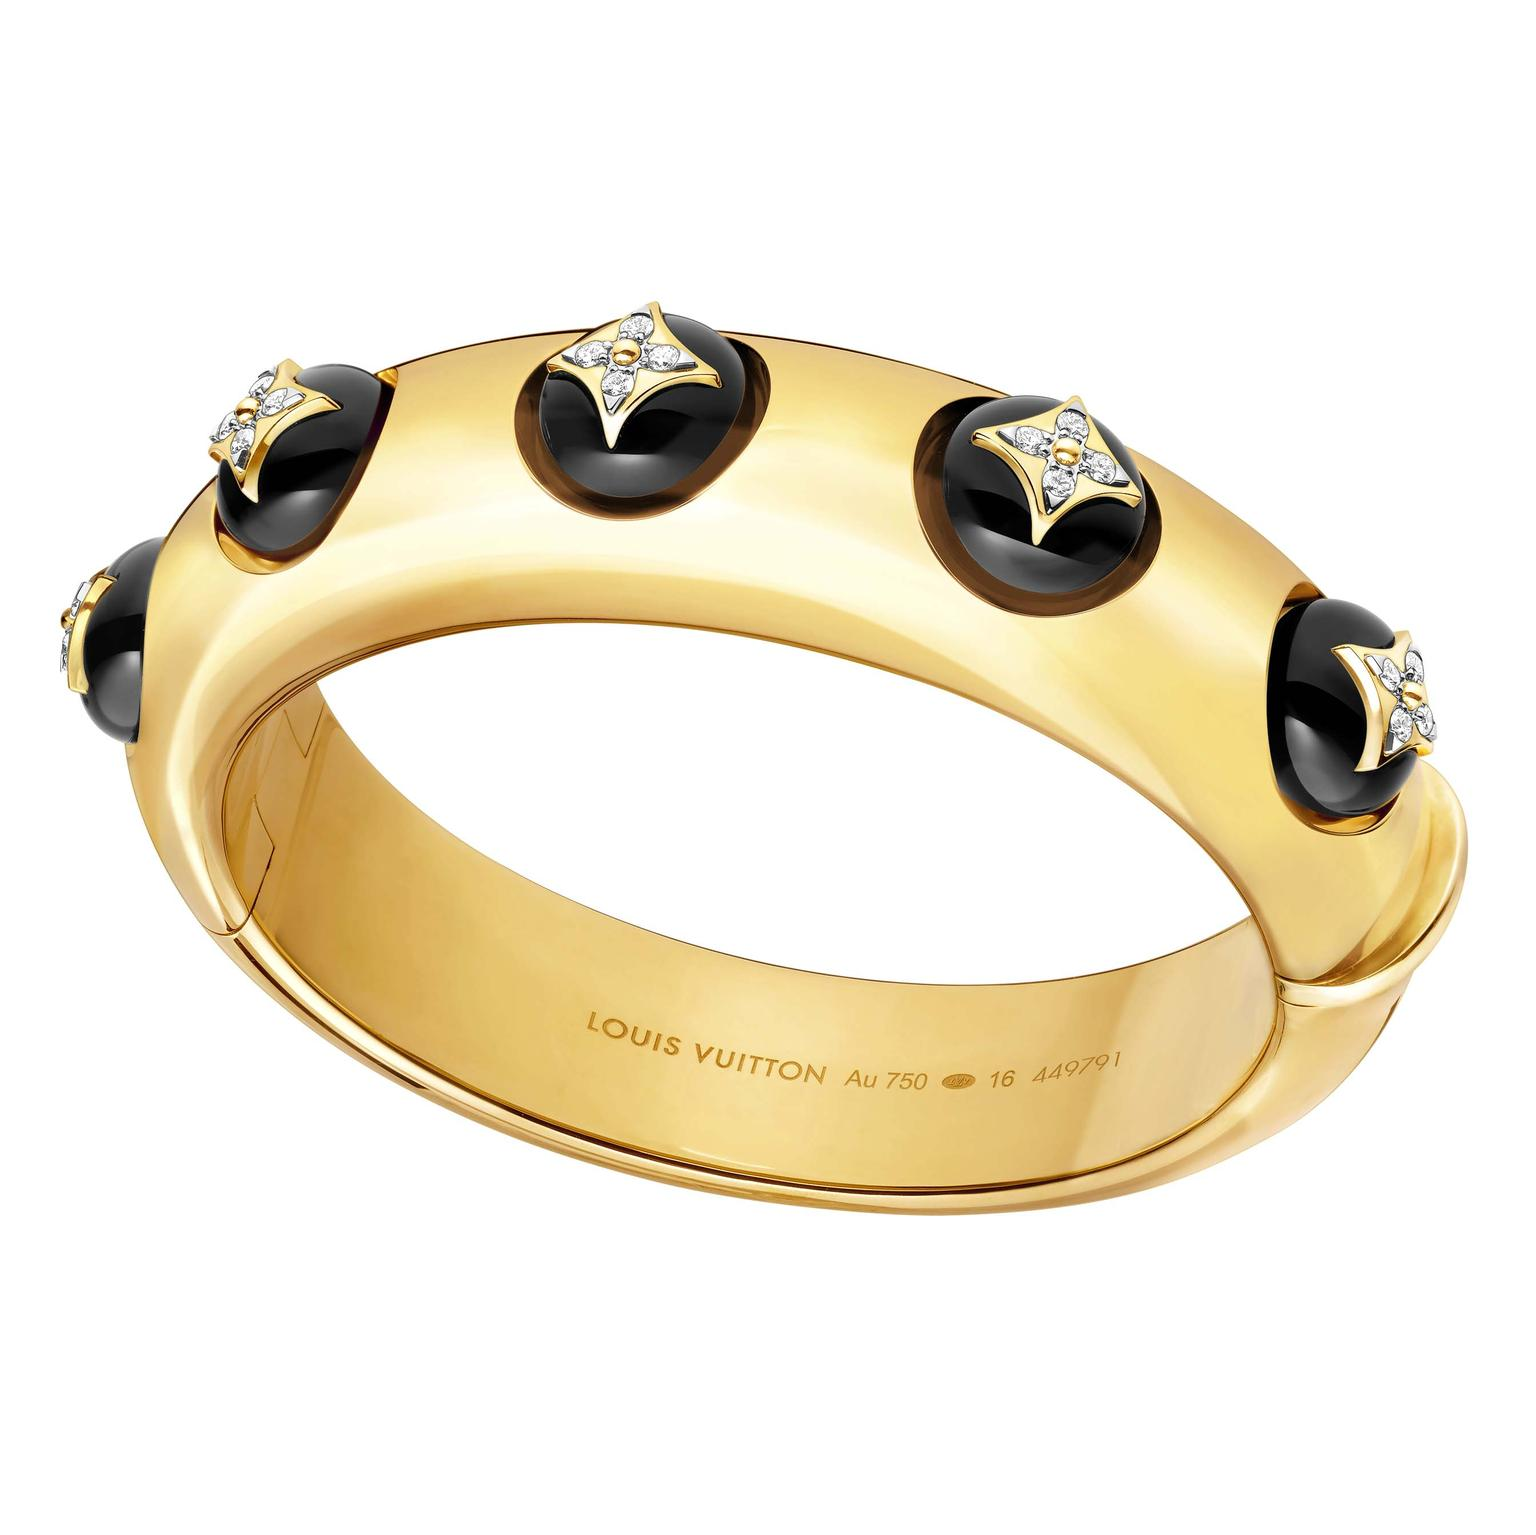 Louis Vuitton B.Blossom bracelet in yellow gold onyx and diamonds